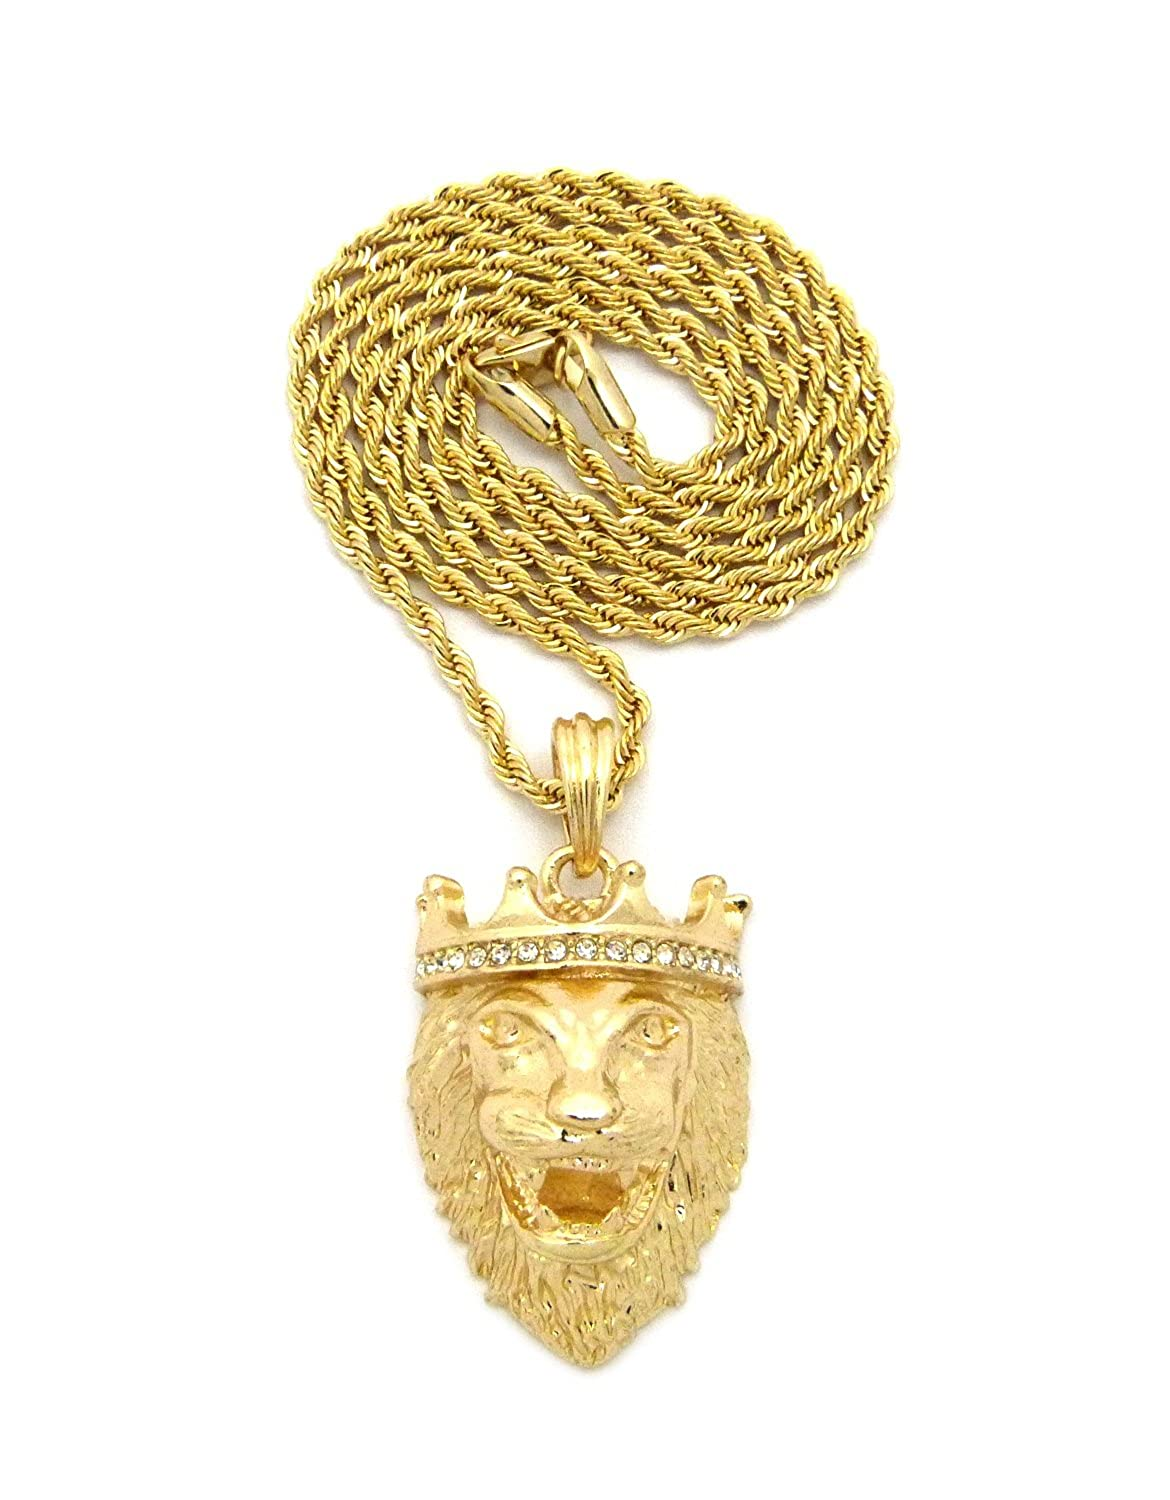 crown to teen hover kay sterling accents pendant zoom necklace en kaystore zm diamond mv silver young